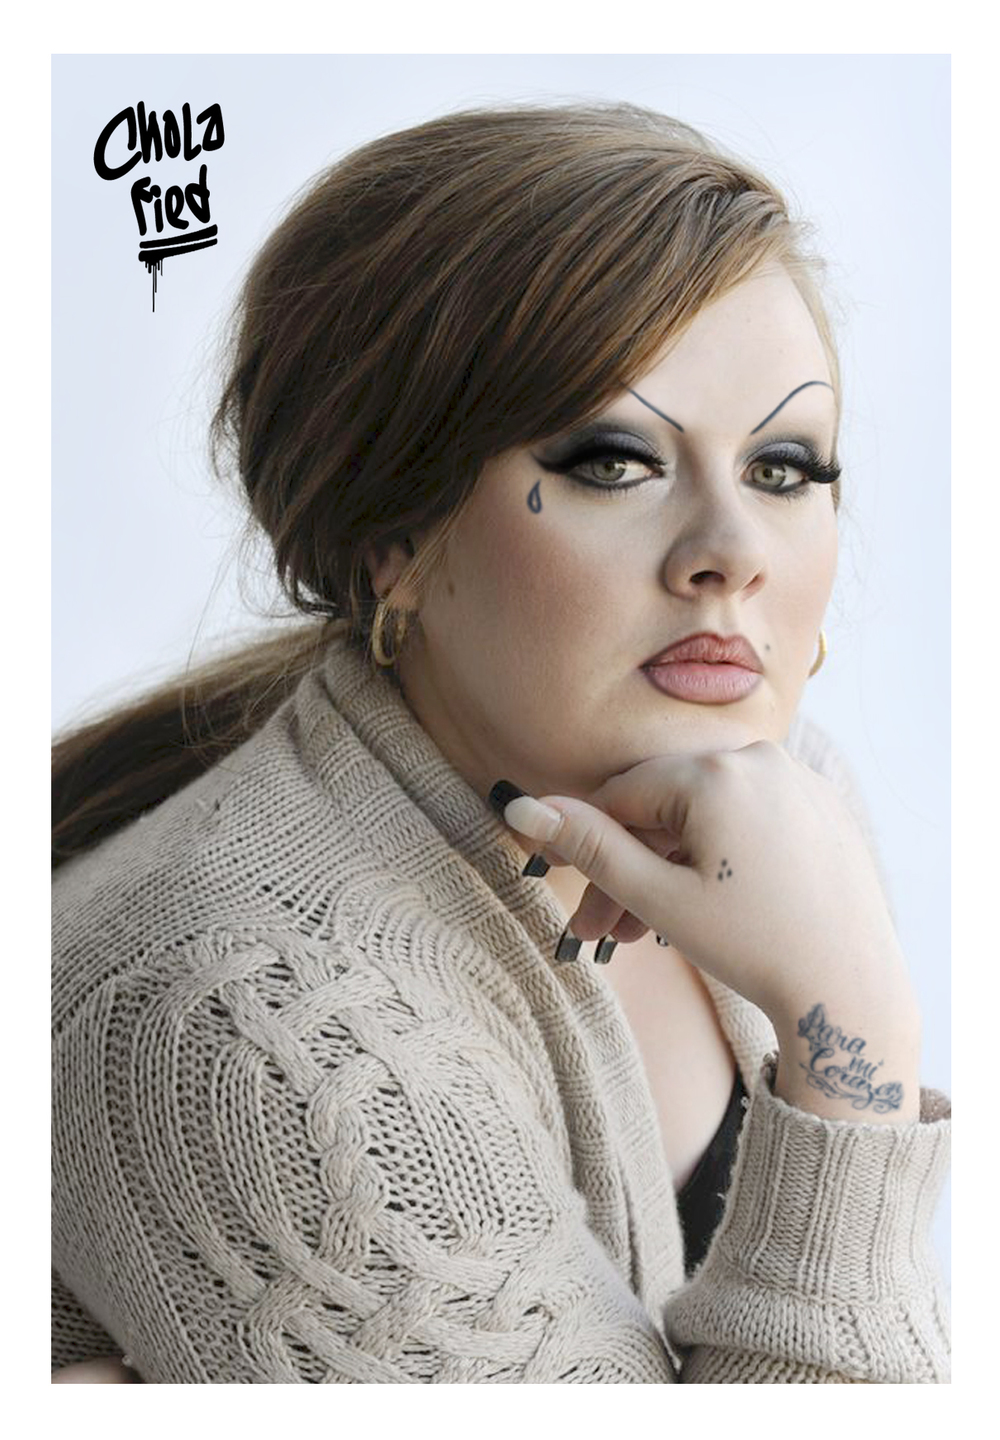 chola adele aka lonely girl